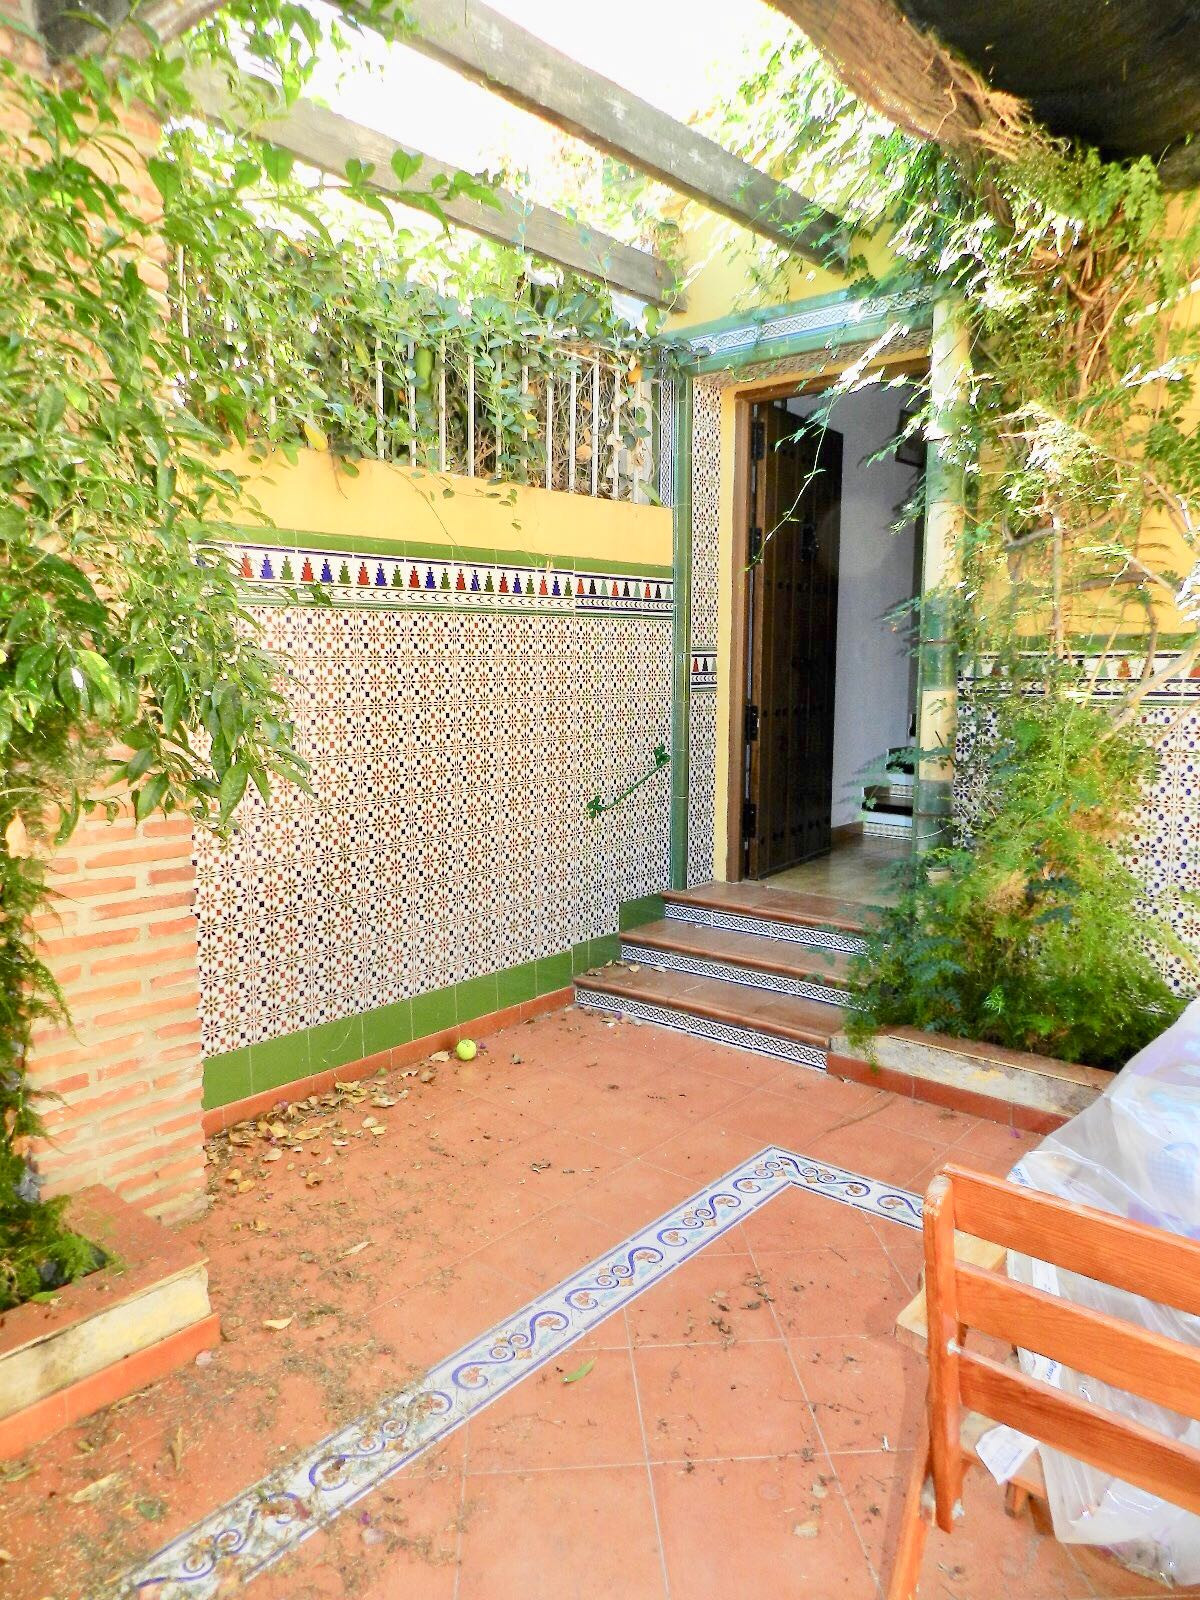 4 Bedroom Villa for sale Málaga